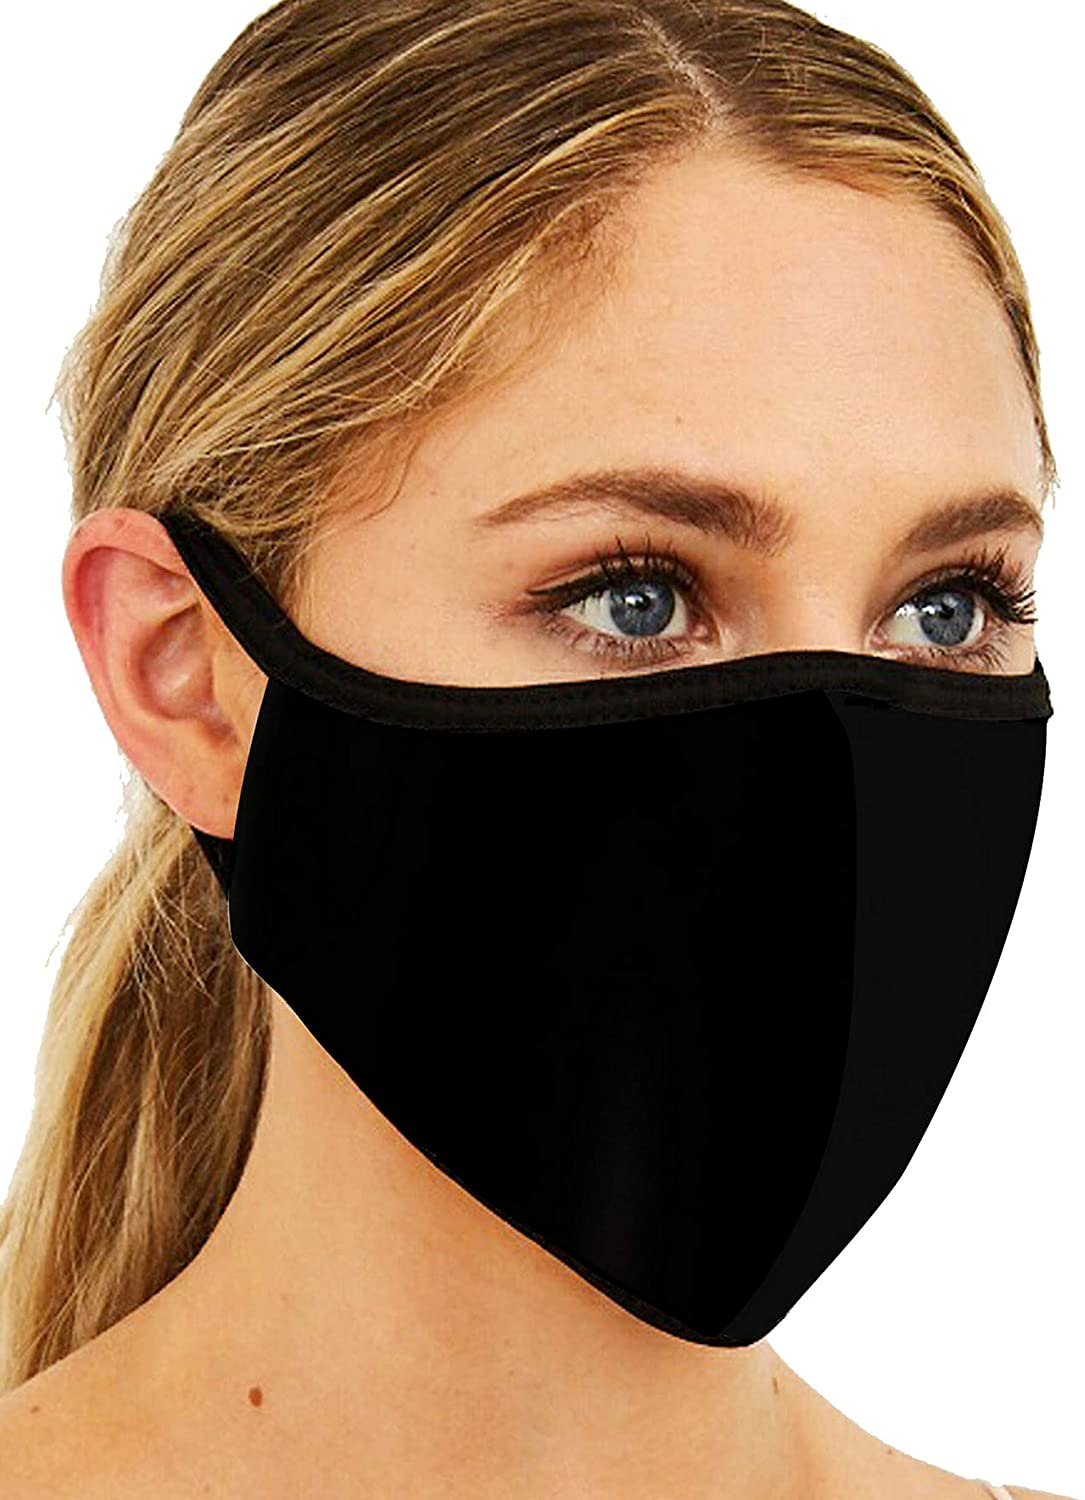 Face Masks for Women Men | Made in USA | 3-Layers | Washable Reusable | Cotton | Unisex.